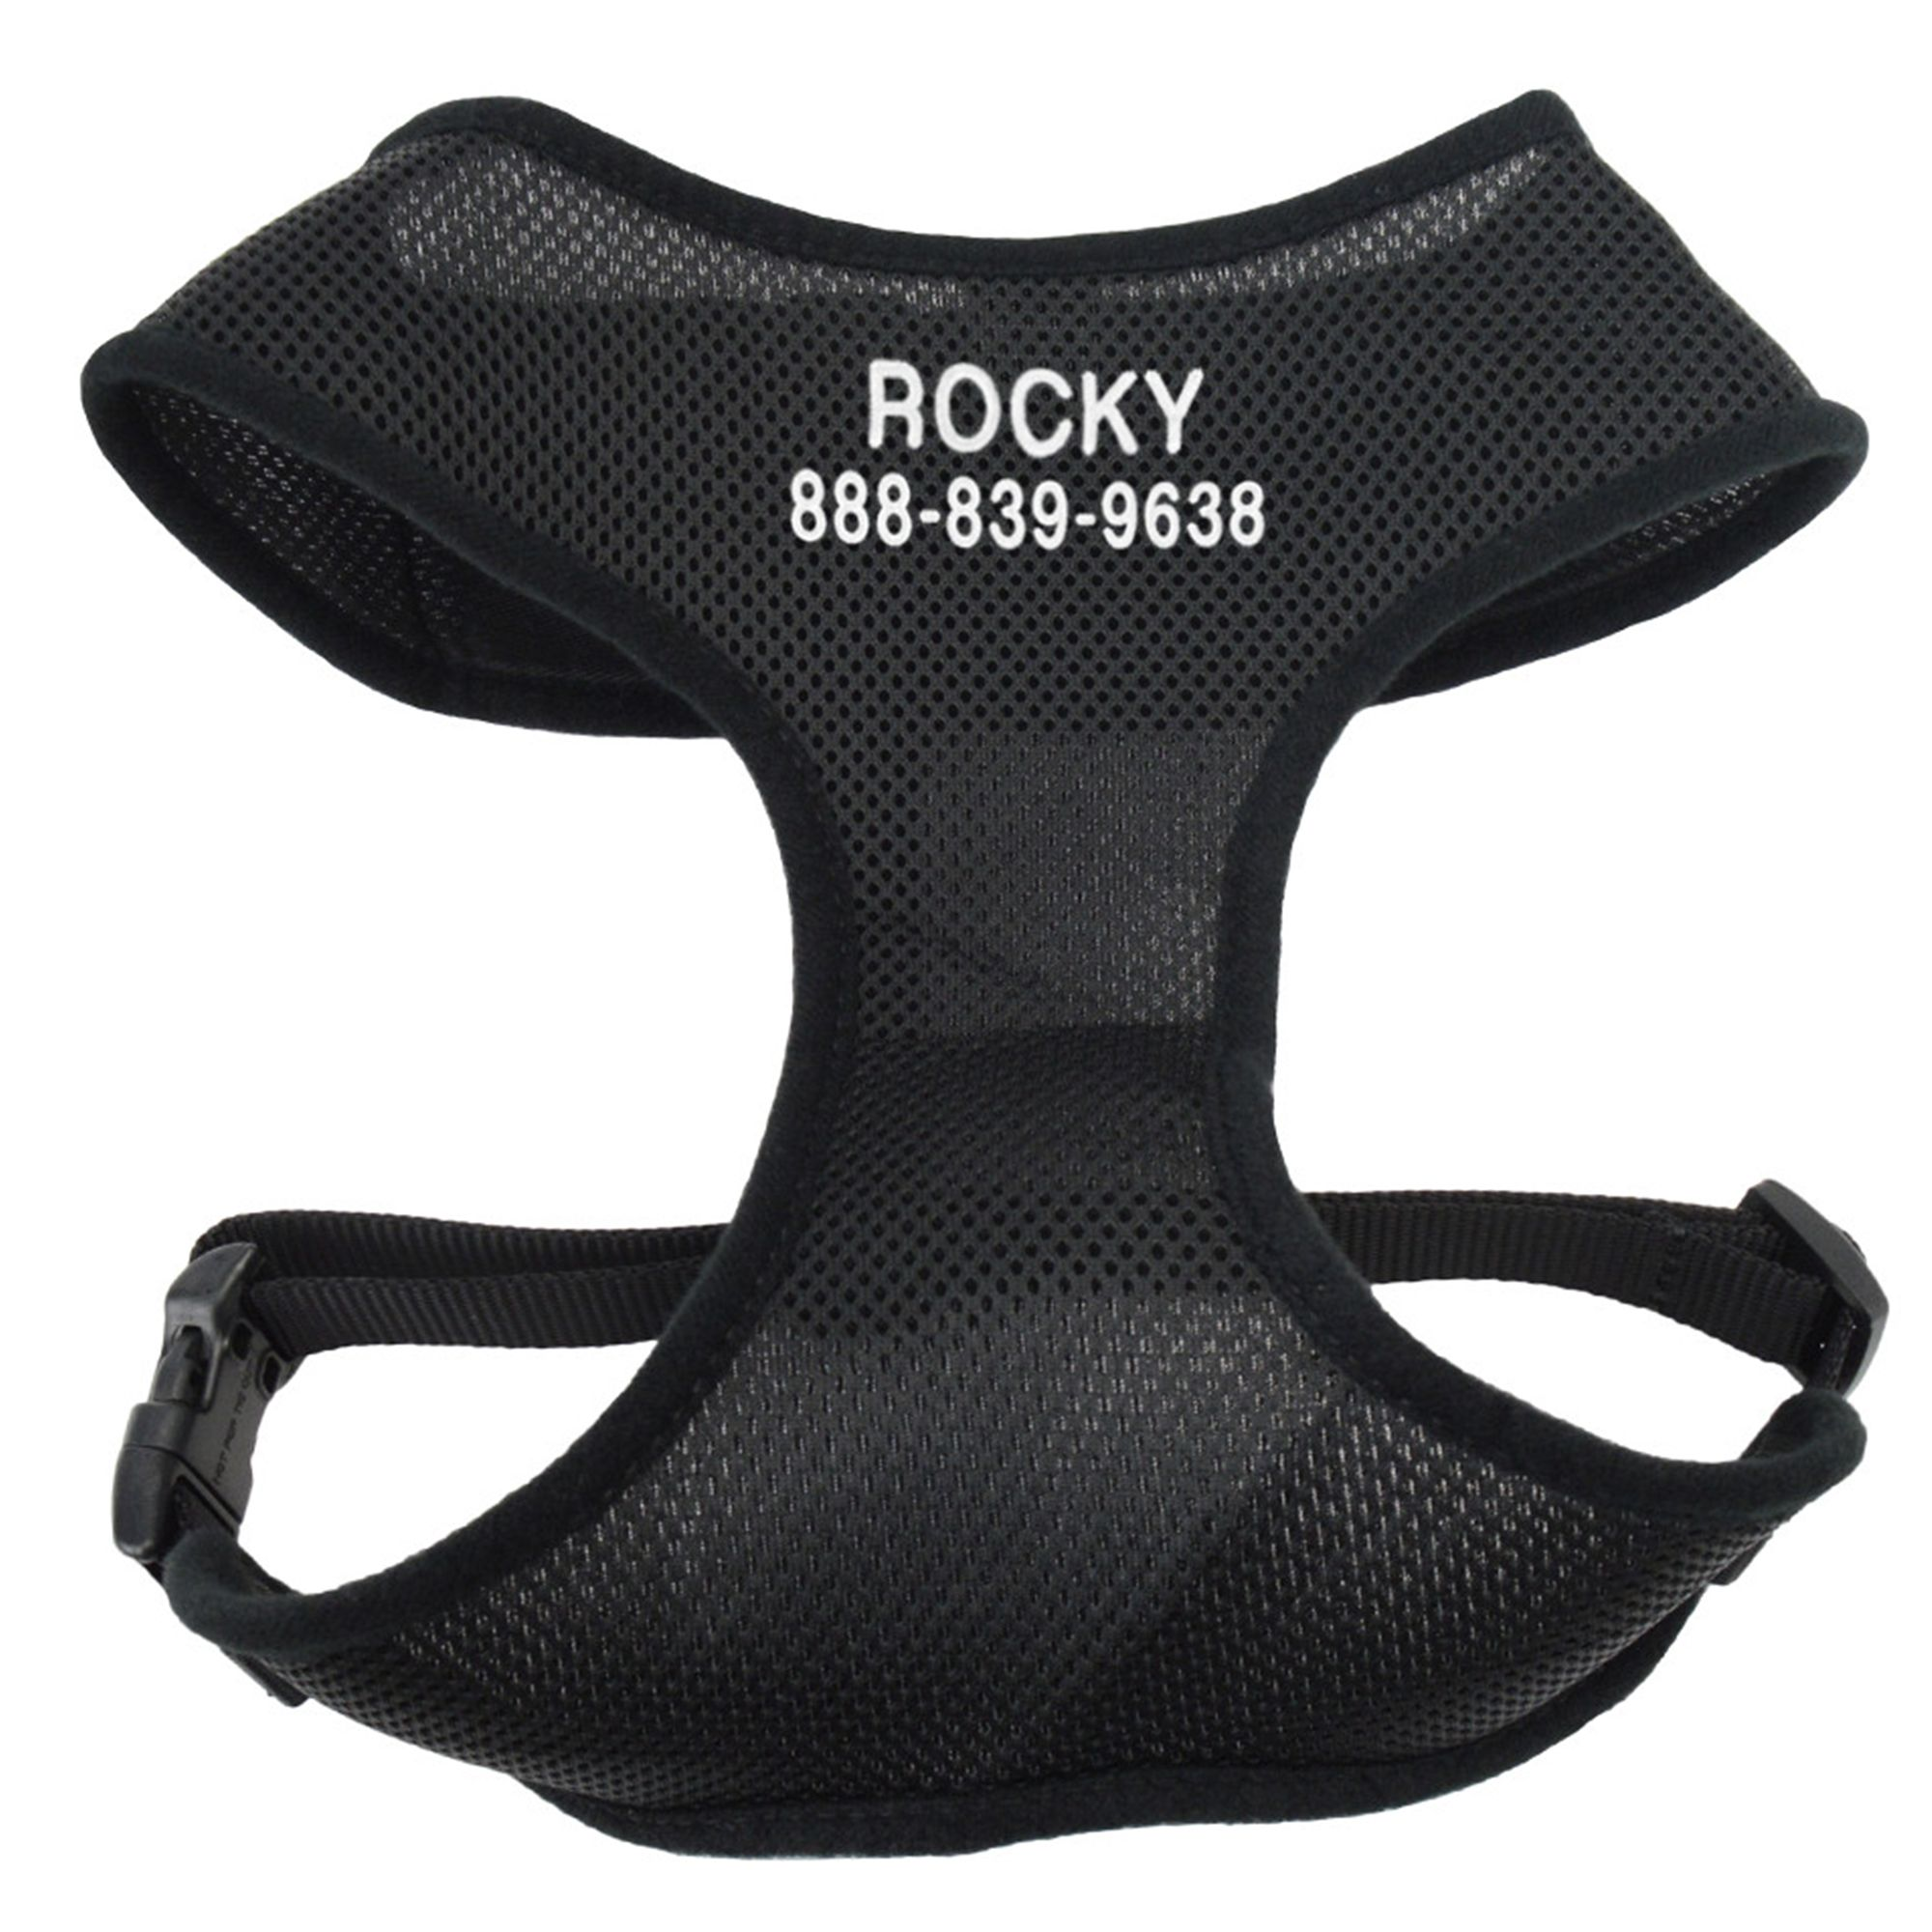 Coastal Pet Products Personalized Comfort Soft Extra Small Dog Harness, Black 5171603